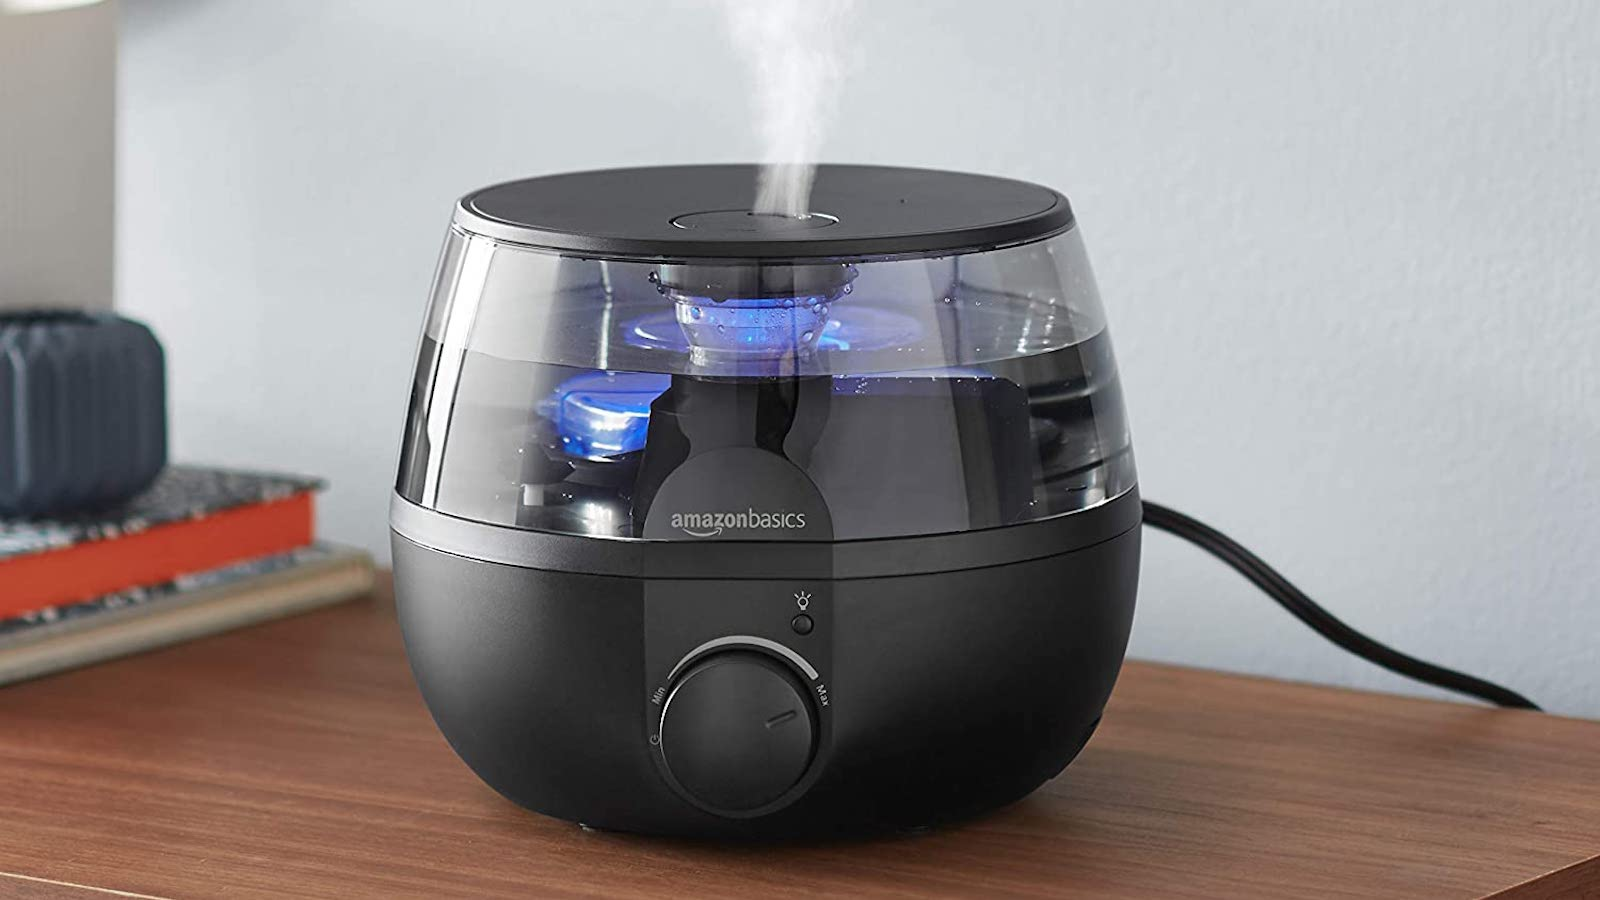 AmazonBasics Humidifier aroma diffuser with a light combats dry air